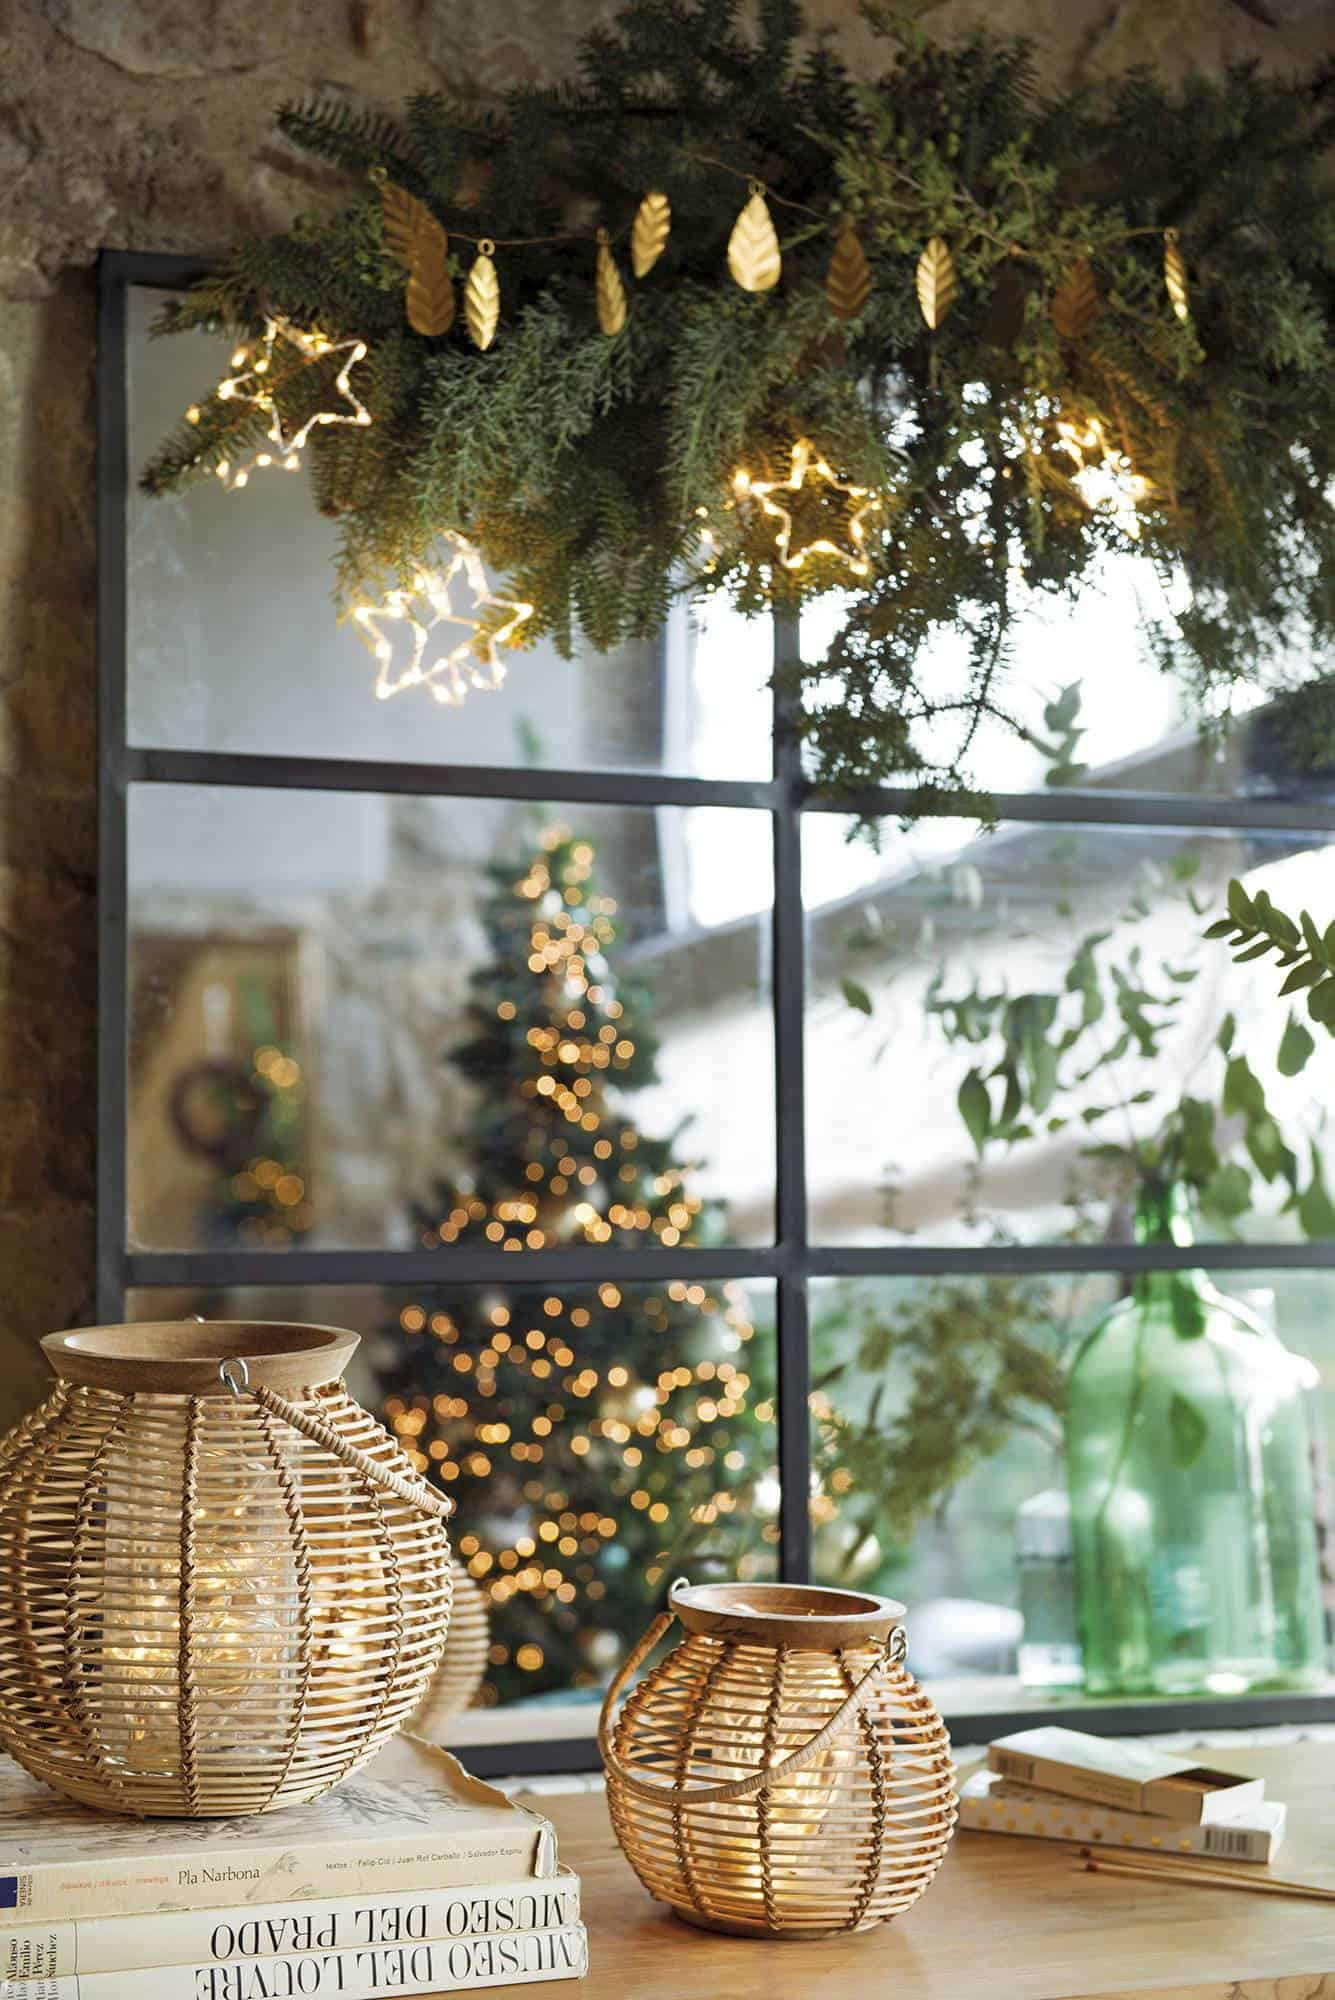 spanish-country-house-living-room-with-christmas-decorations